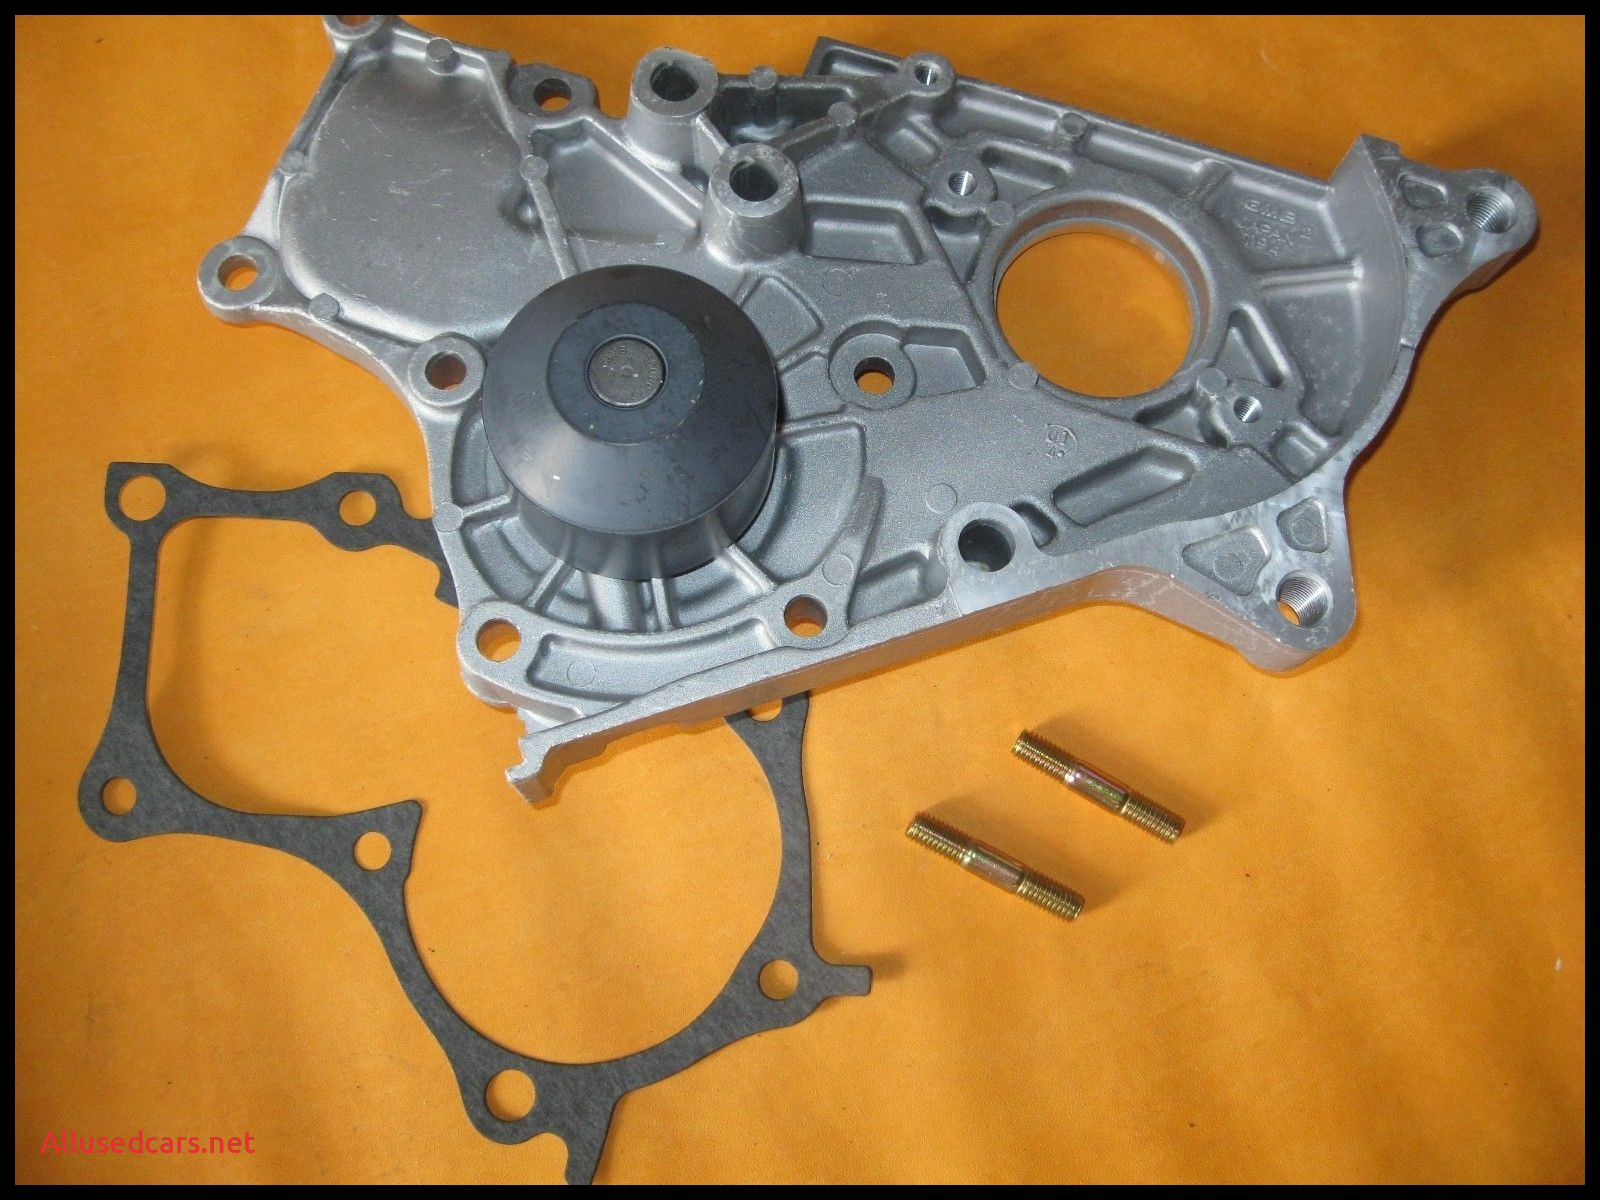 2014 toyota Camry Inspirational toyota Camry Water Pump Replacement – the Best Choice Car